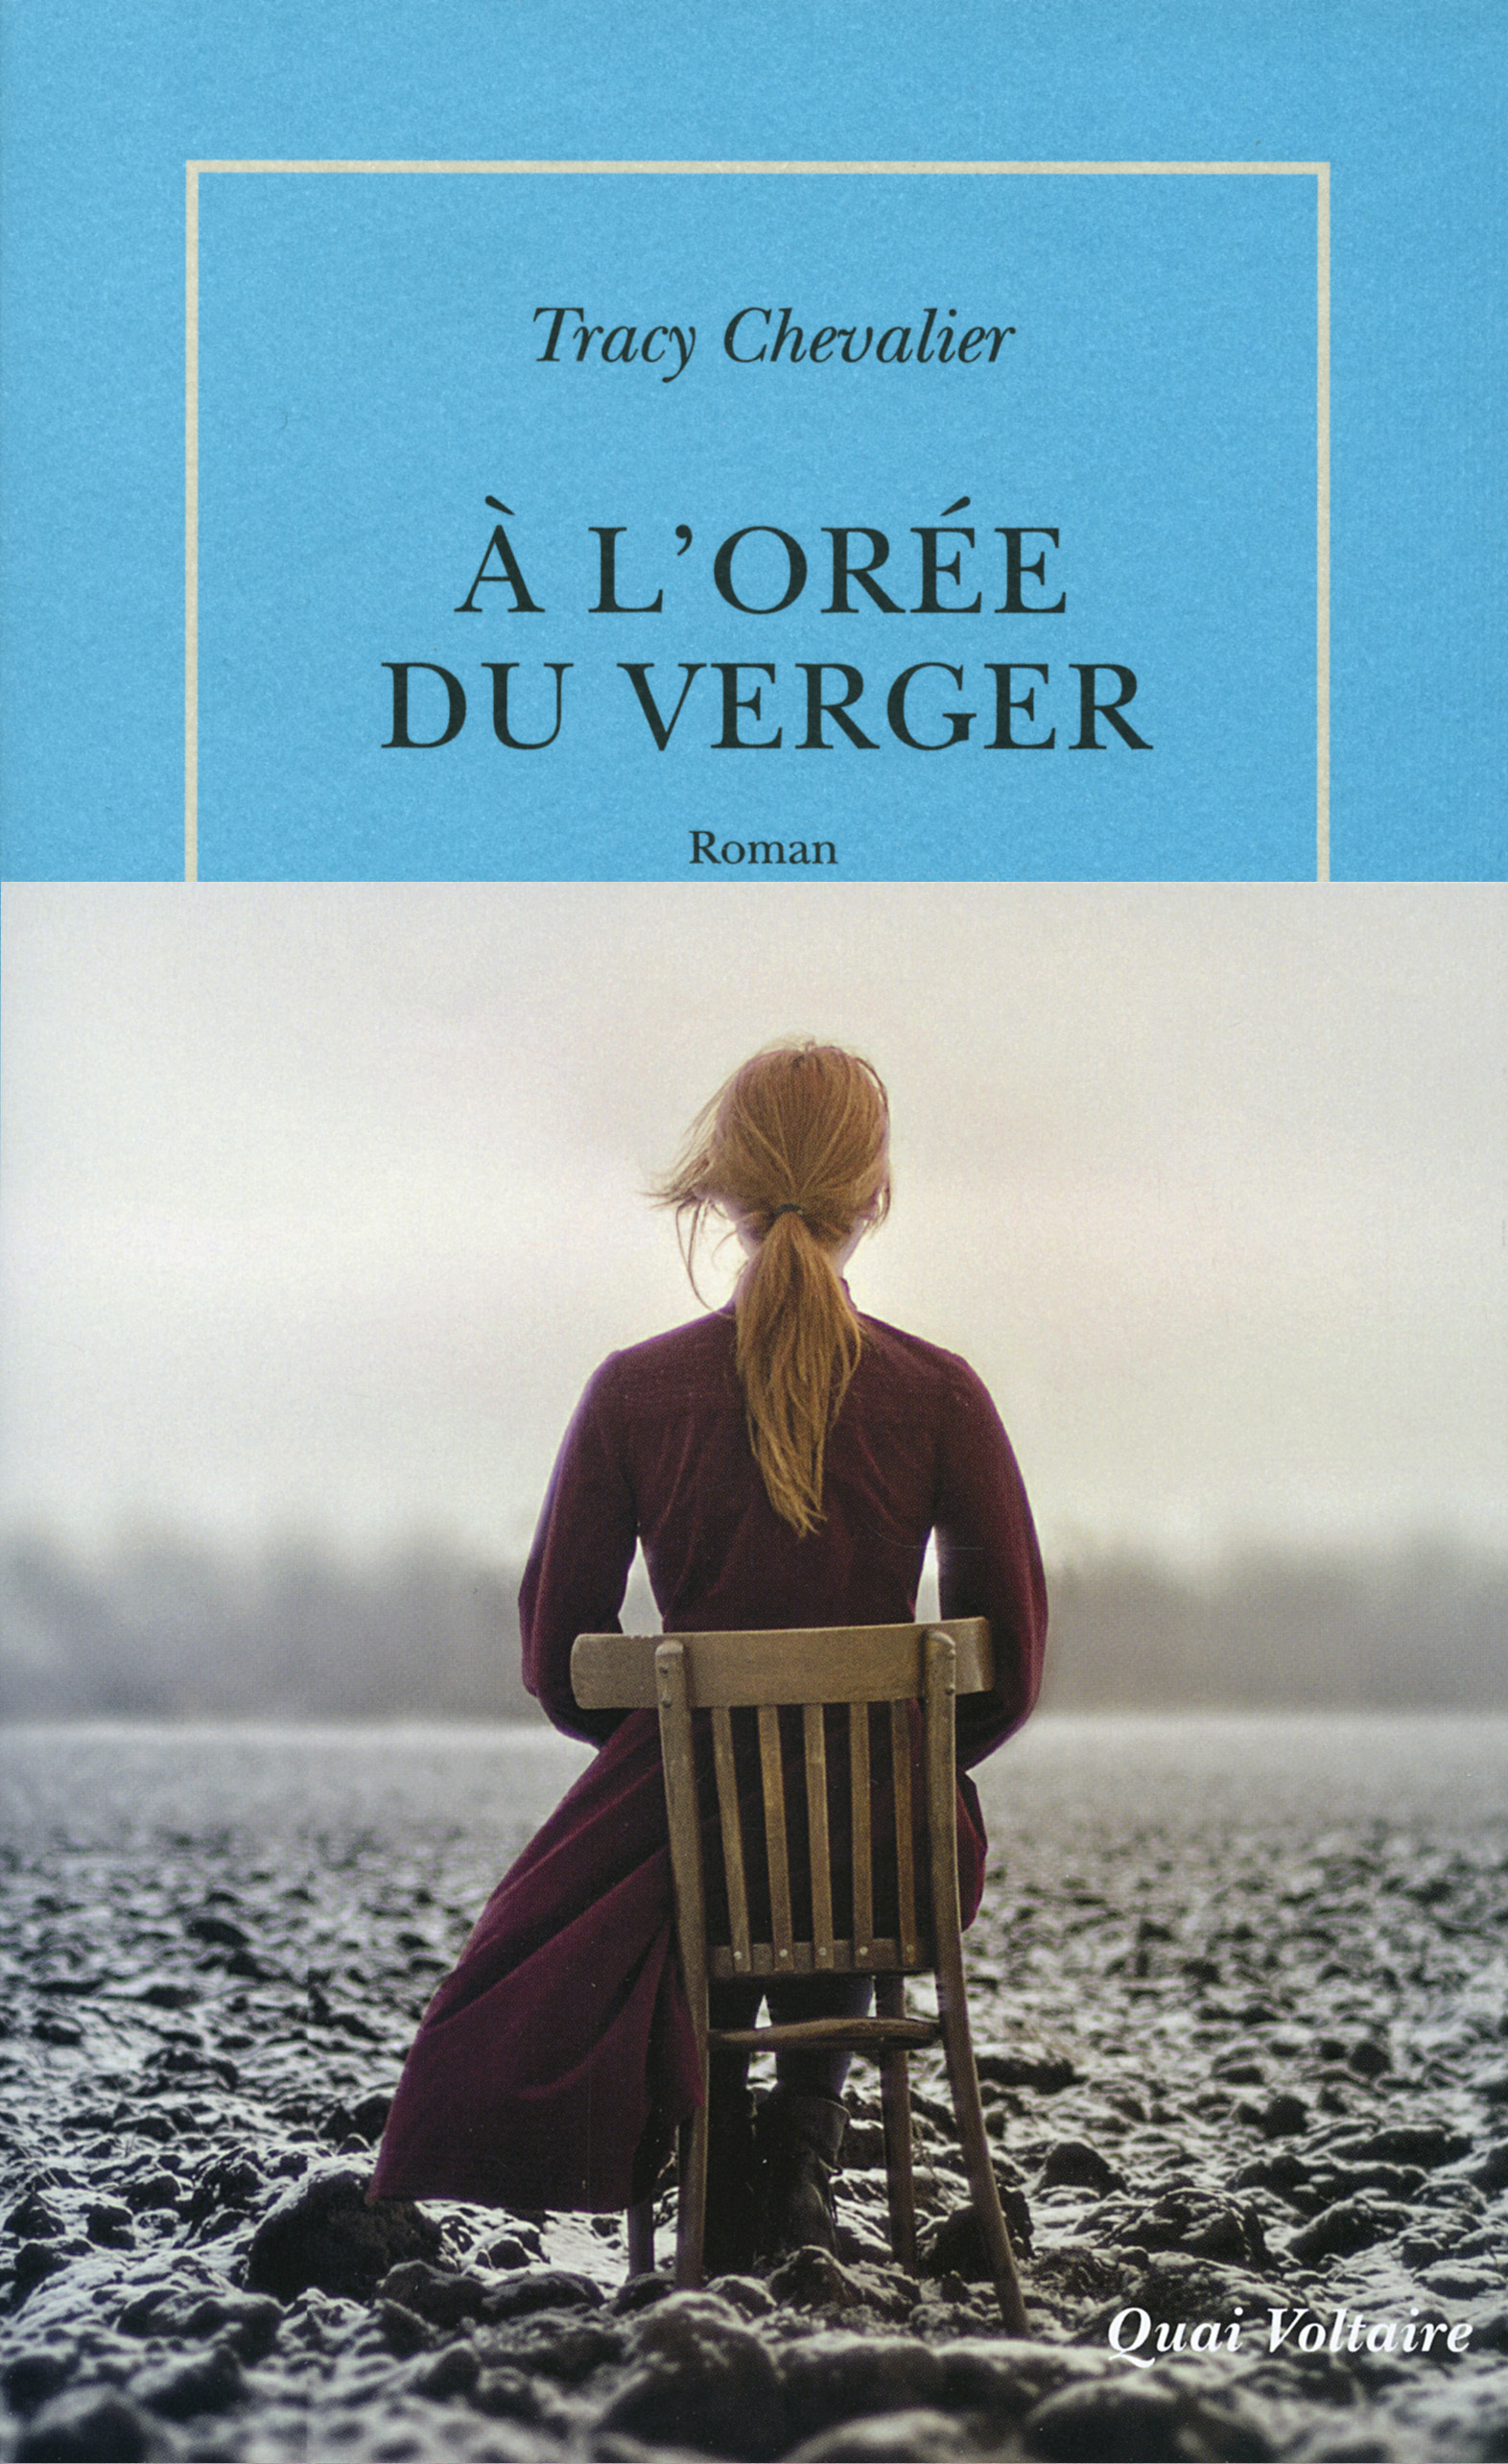 A L'OREE DU VERGER